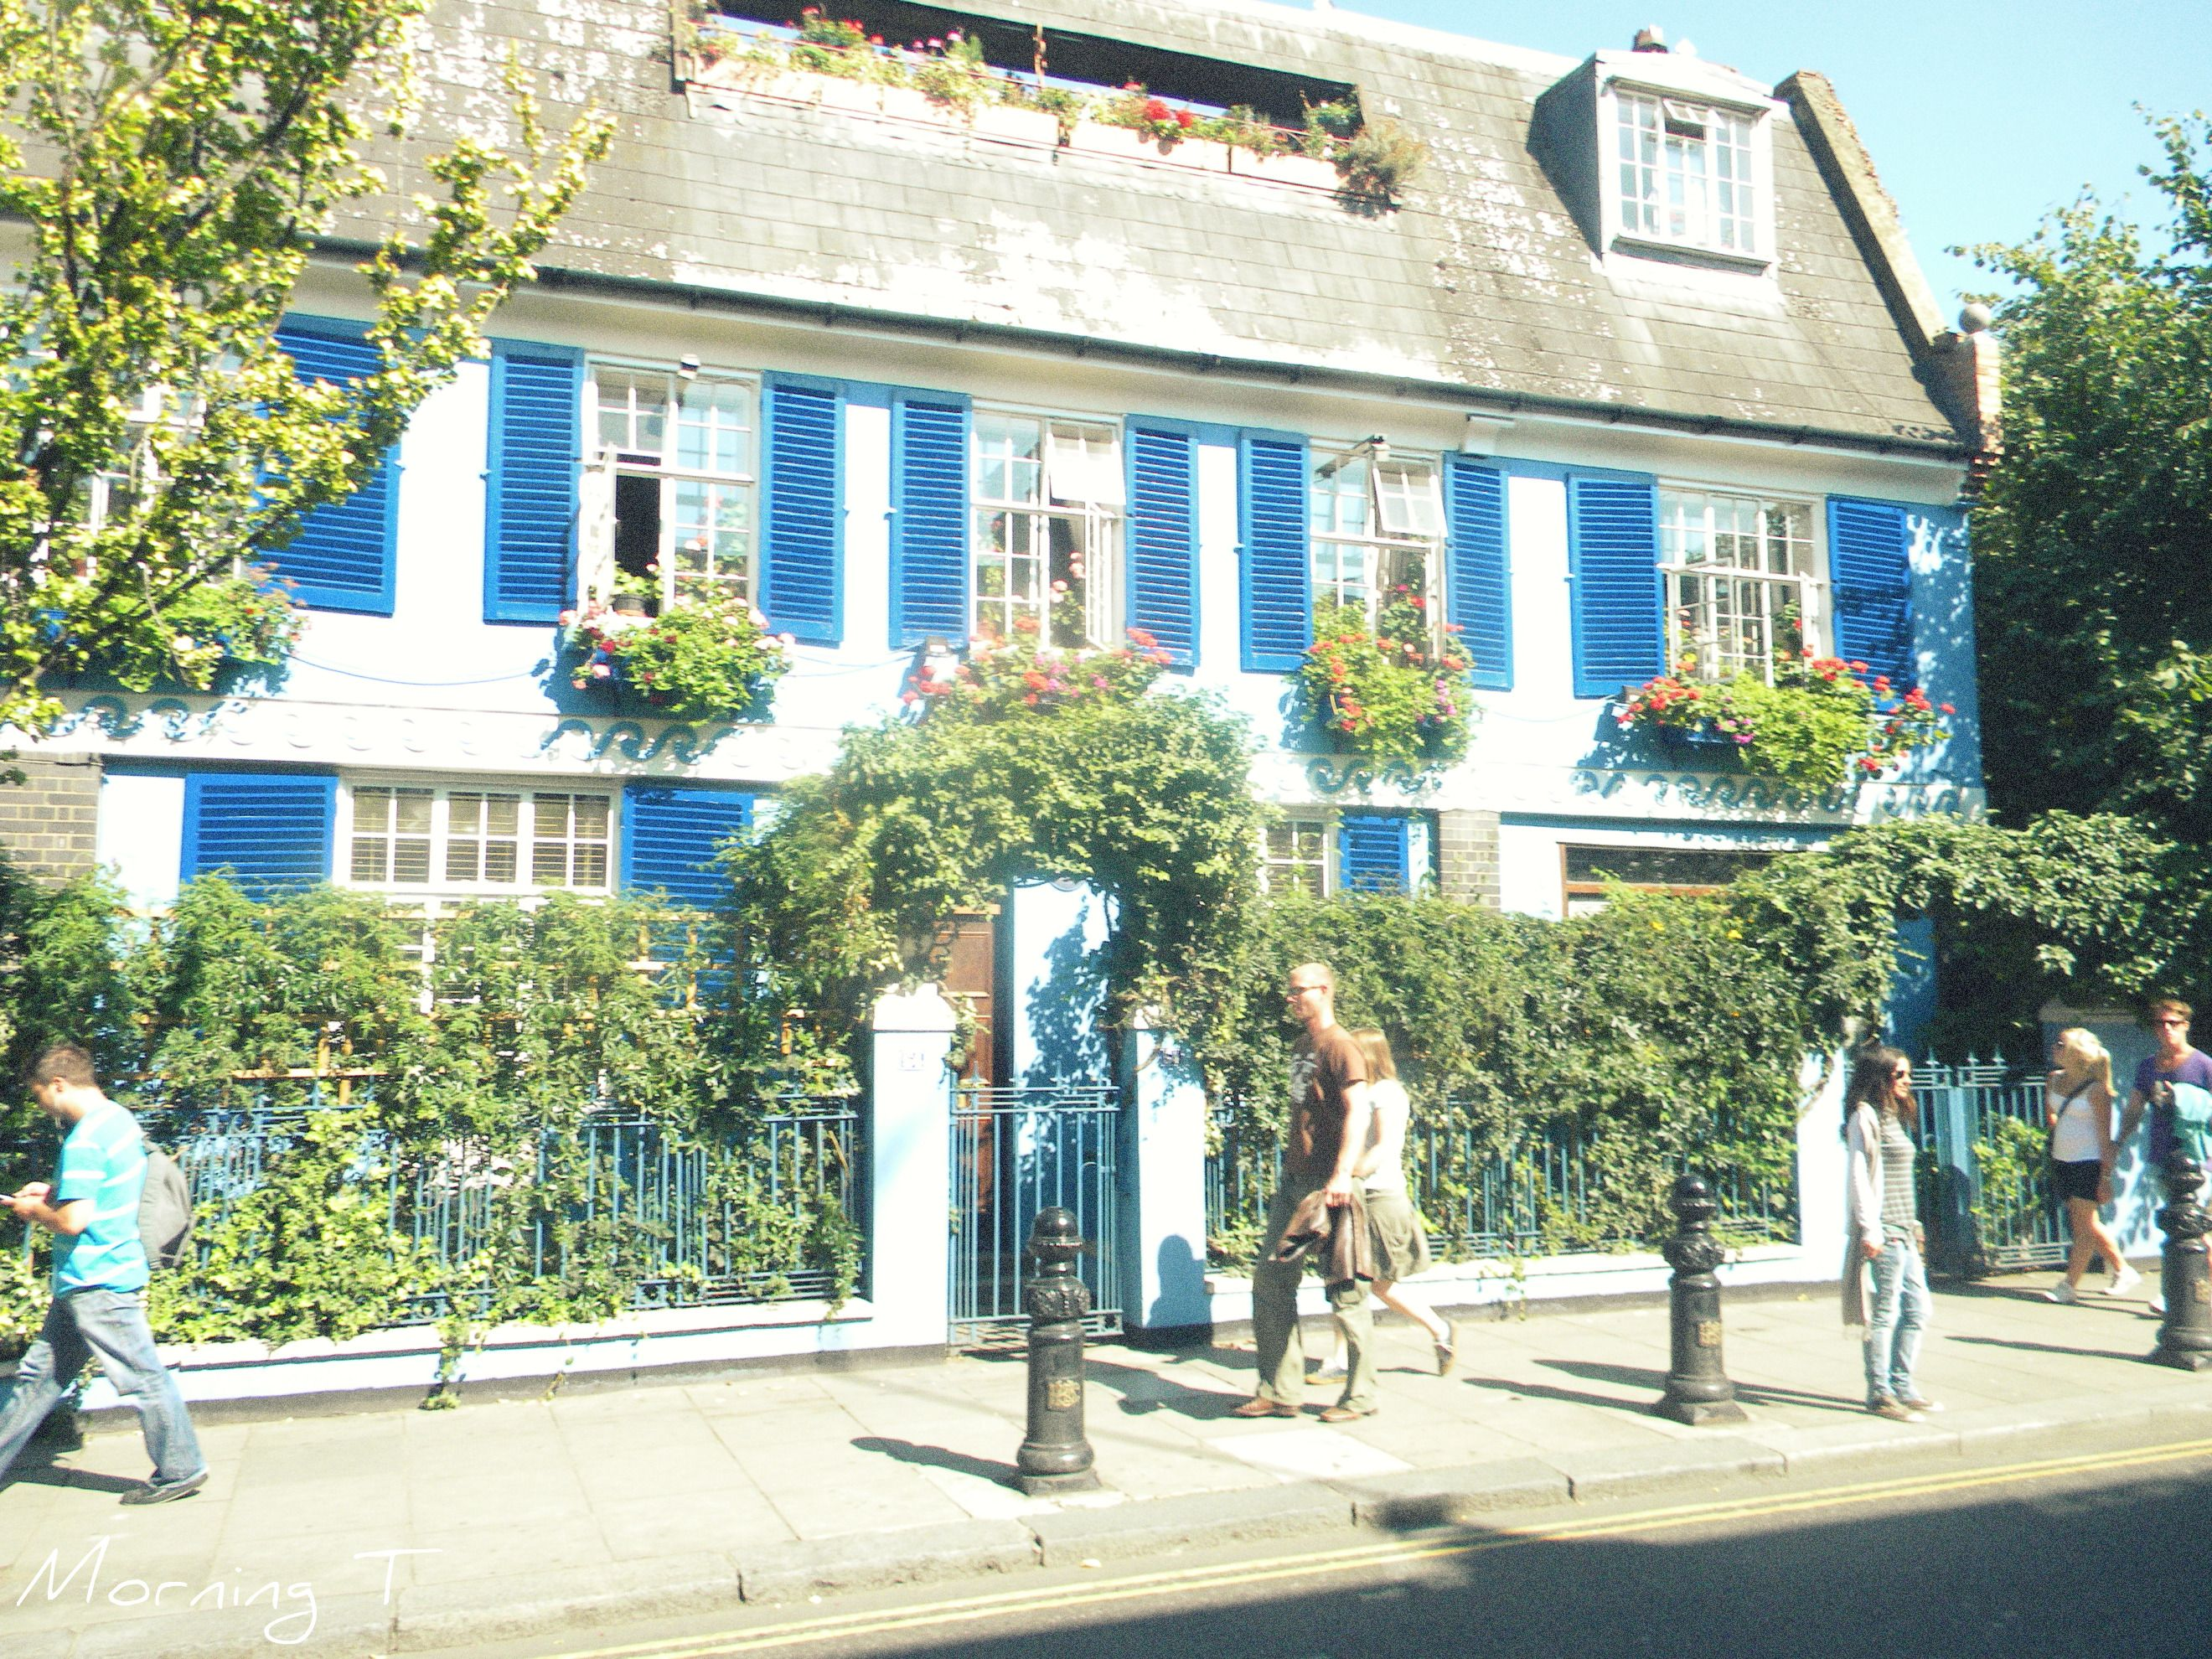 Notting Hill cottage. London, England 2010